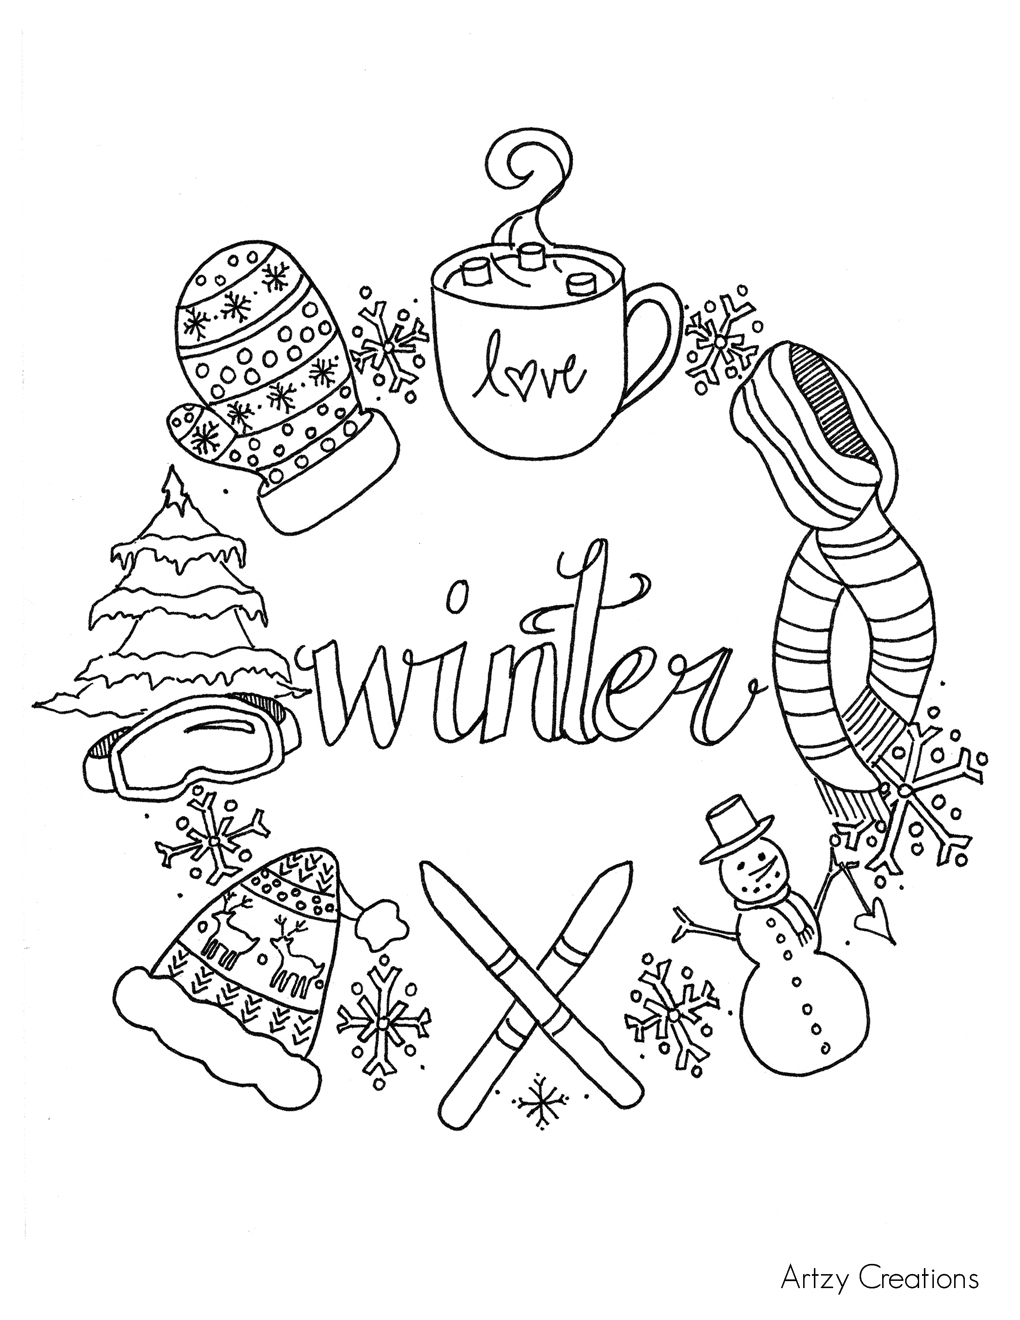 Free Winter Coloring Page - artzycreations.com